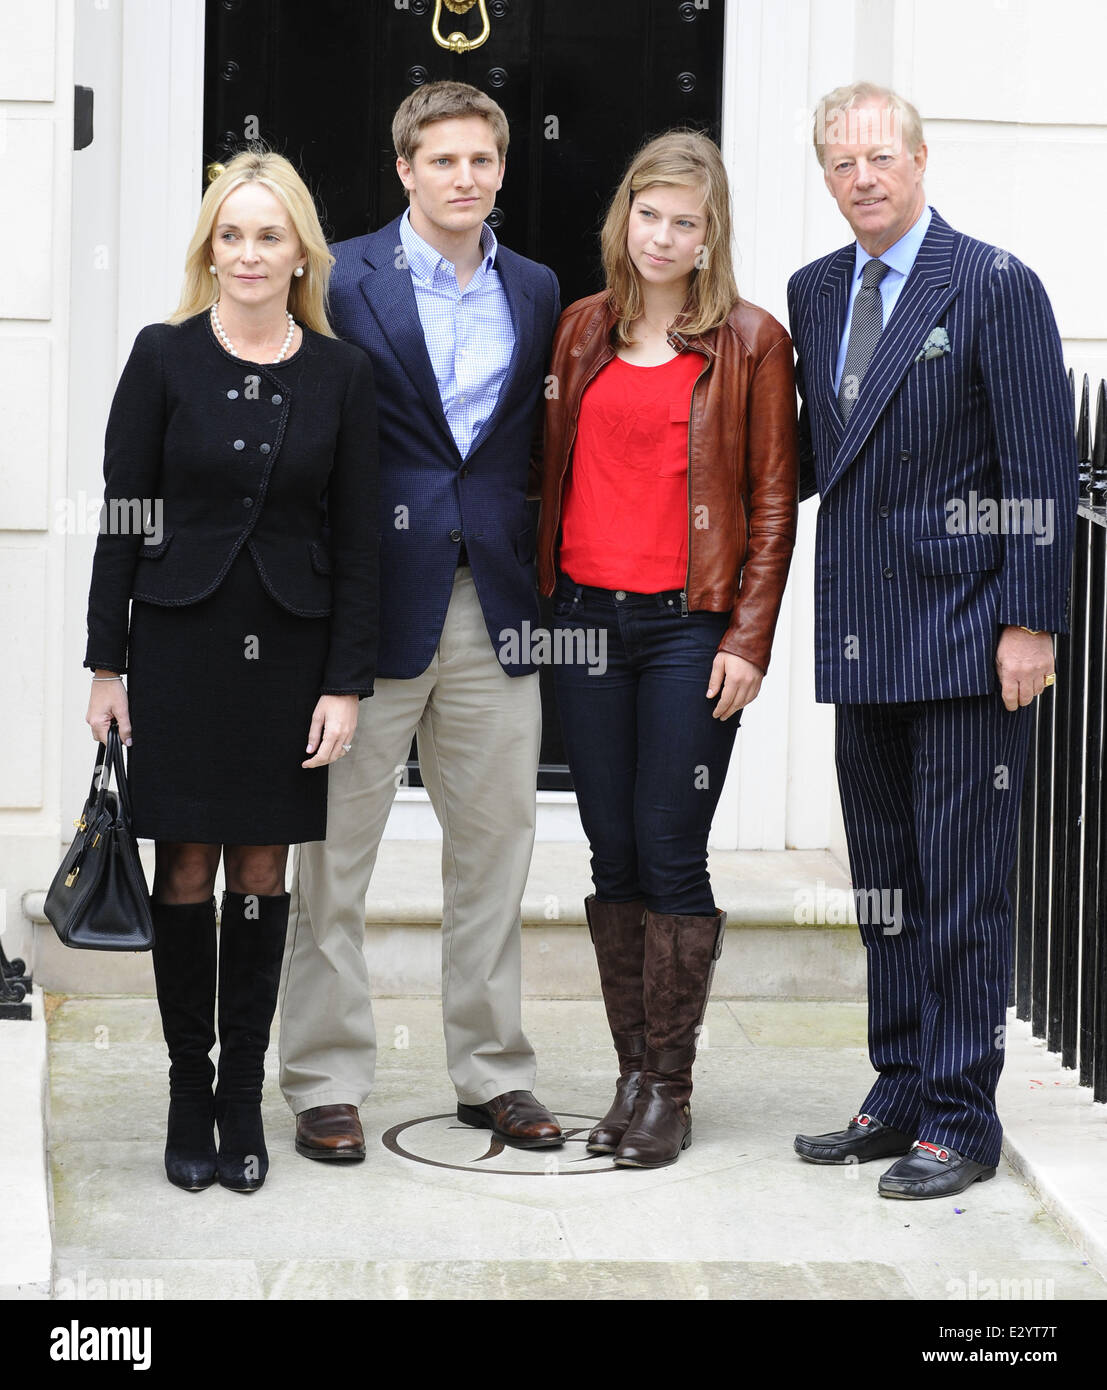 sir mark thatcher with his wife sarahjane and children